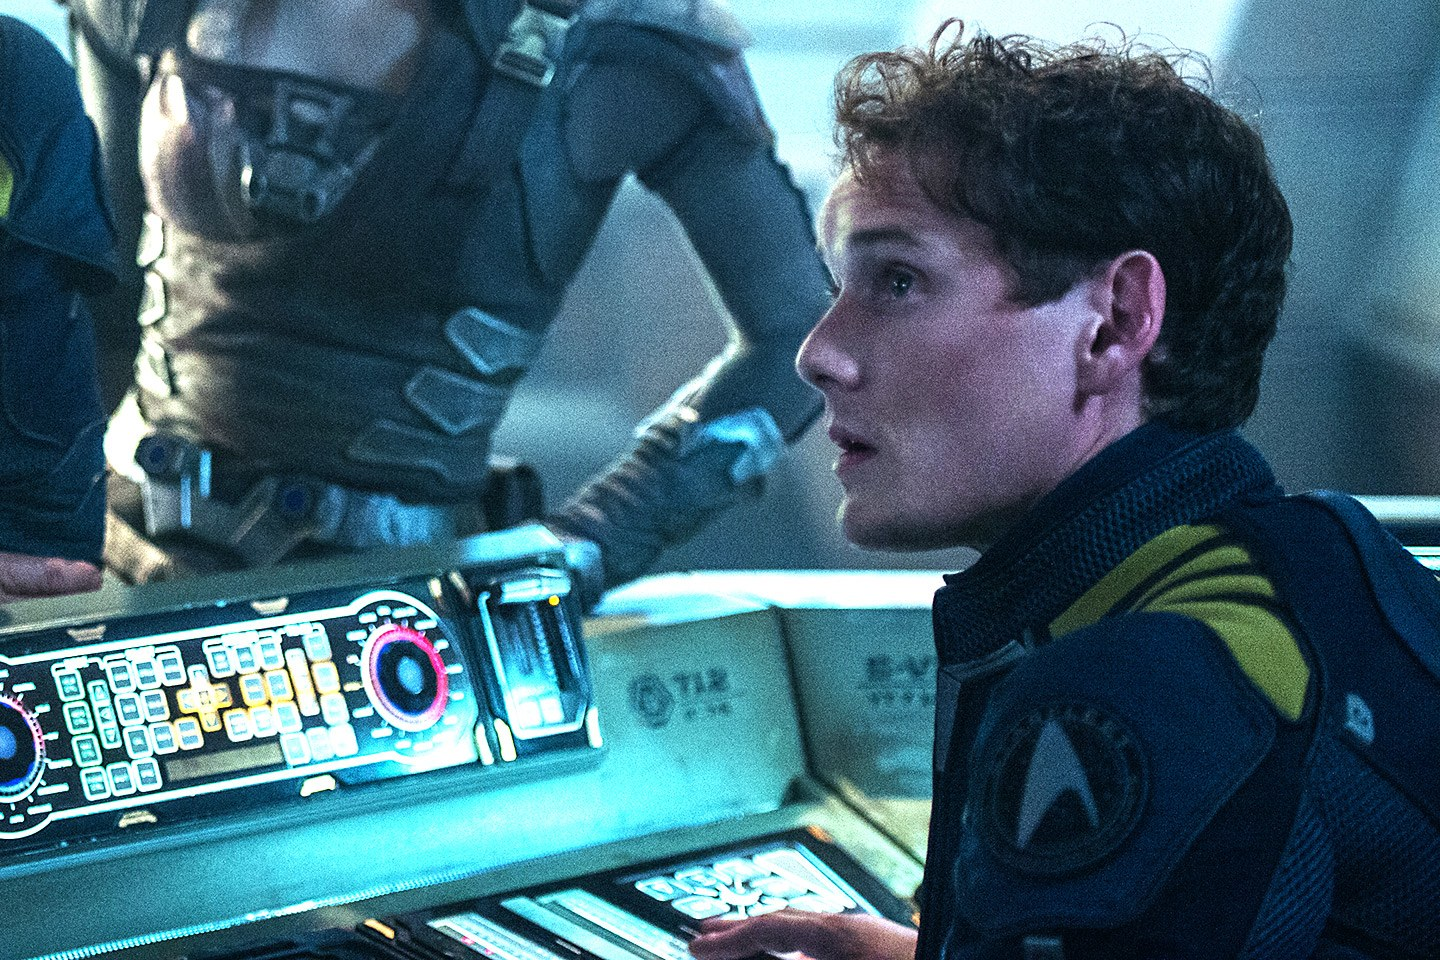 It's hard not to watch Star Trek Beyond without a heavy heart for Anton Yelchin, who died tragically due to a car malfunction at his home just over a month ago.